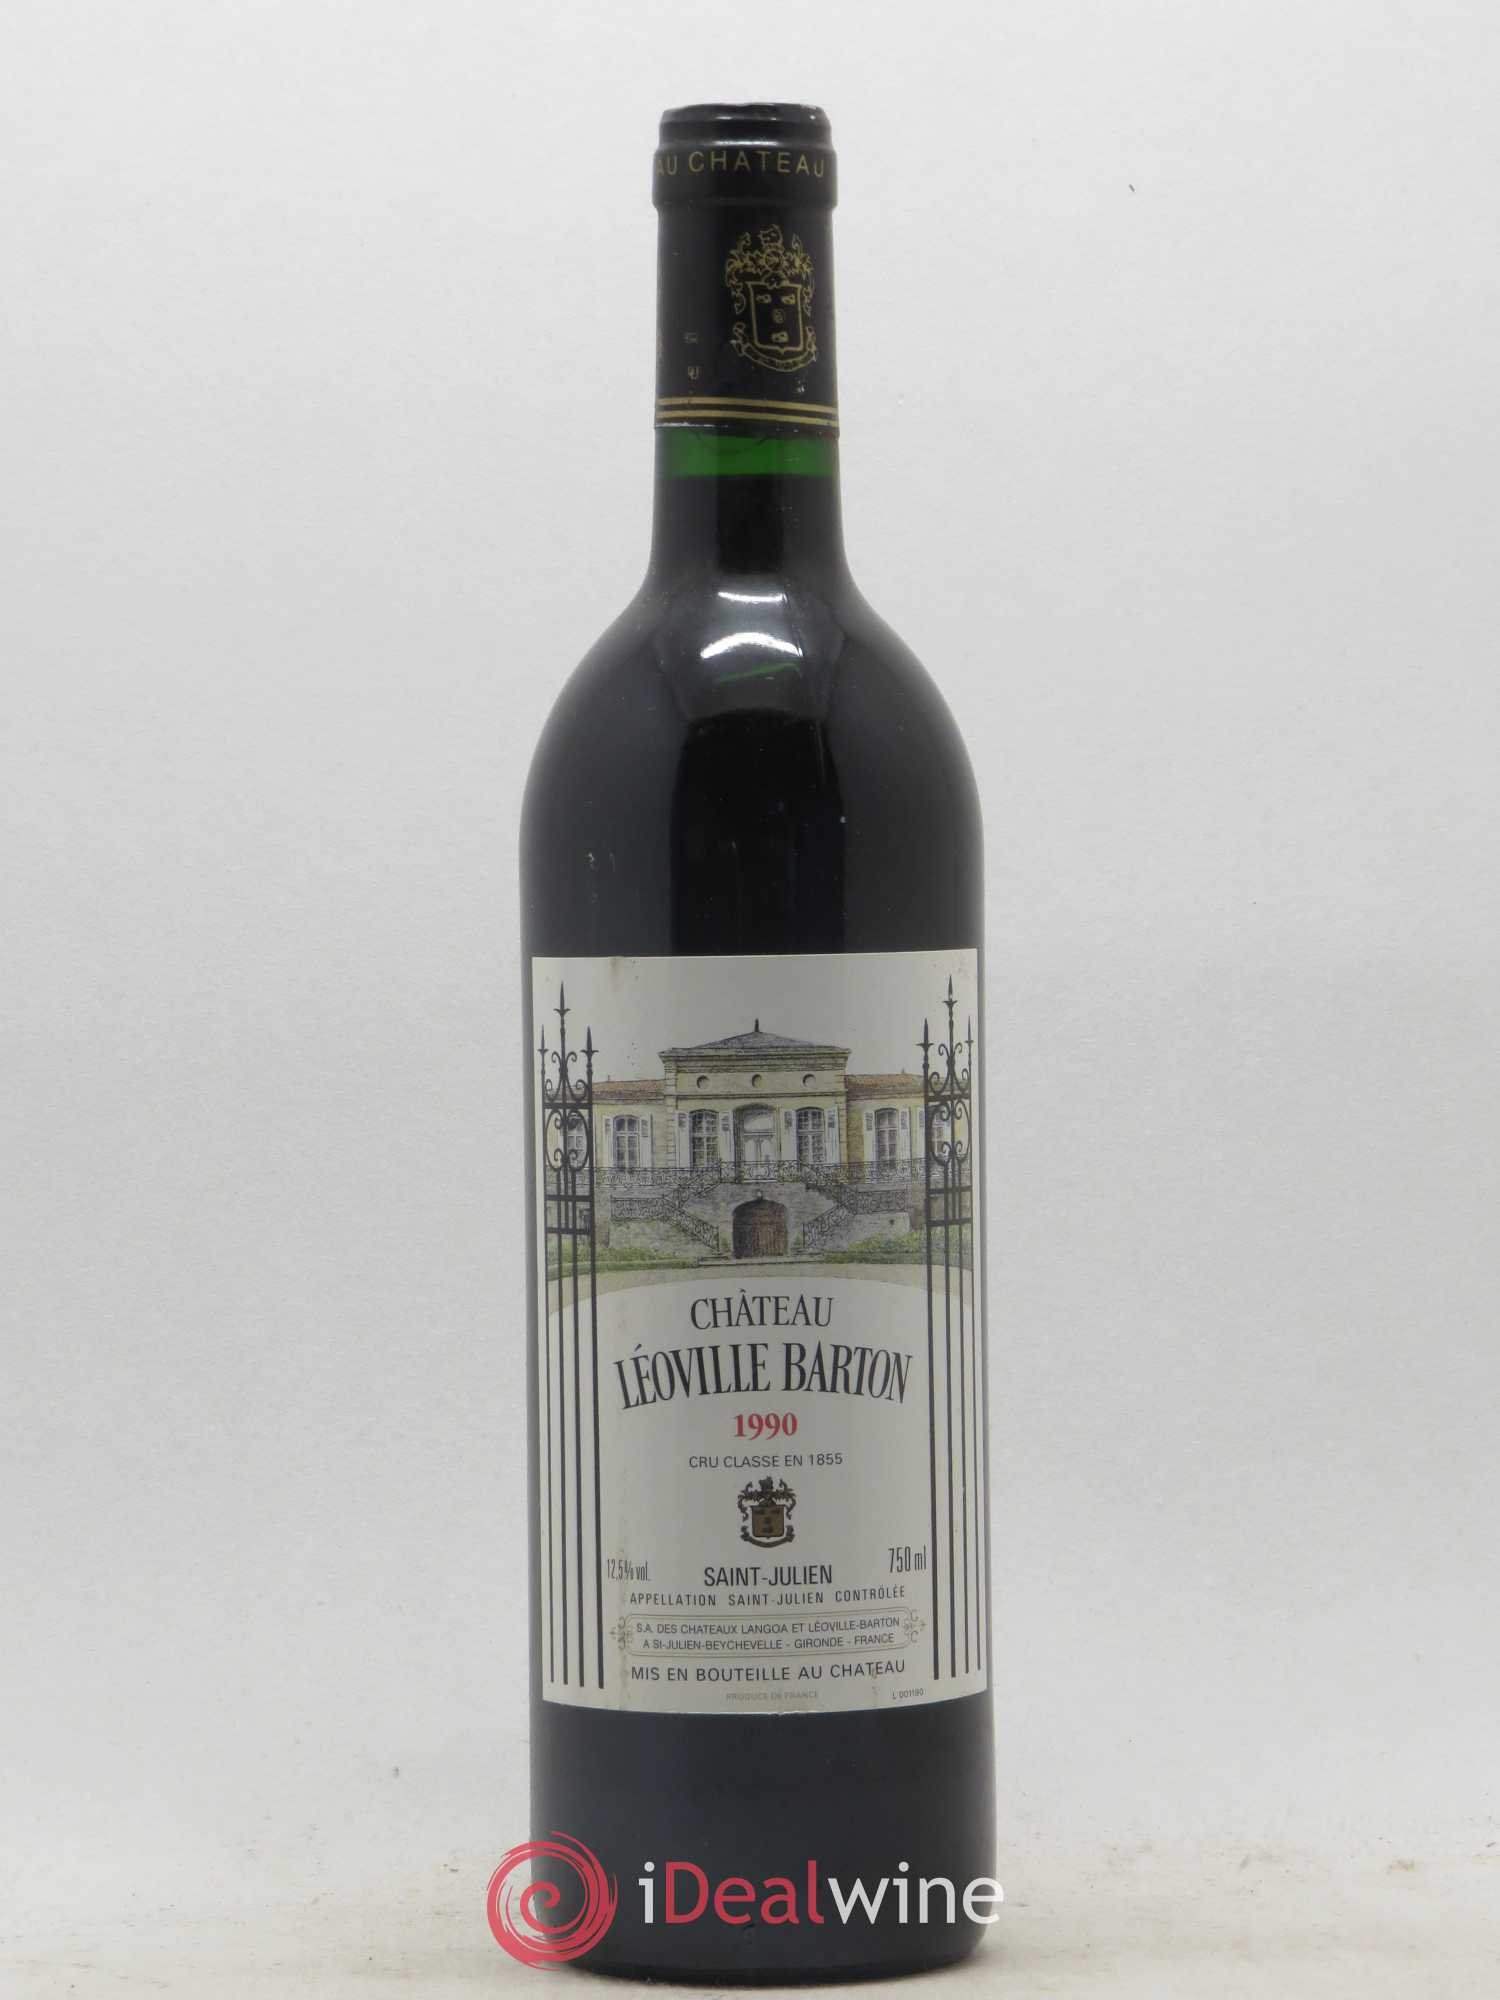 Château Léoville Barton 2ème Grand Cru Classé  1990 - Lot of 1 Bottle